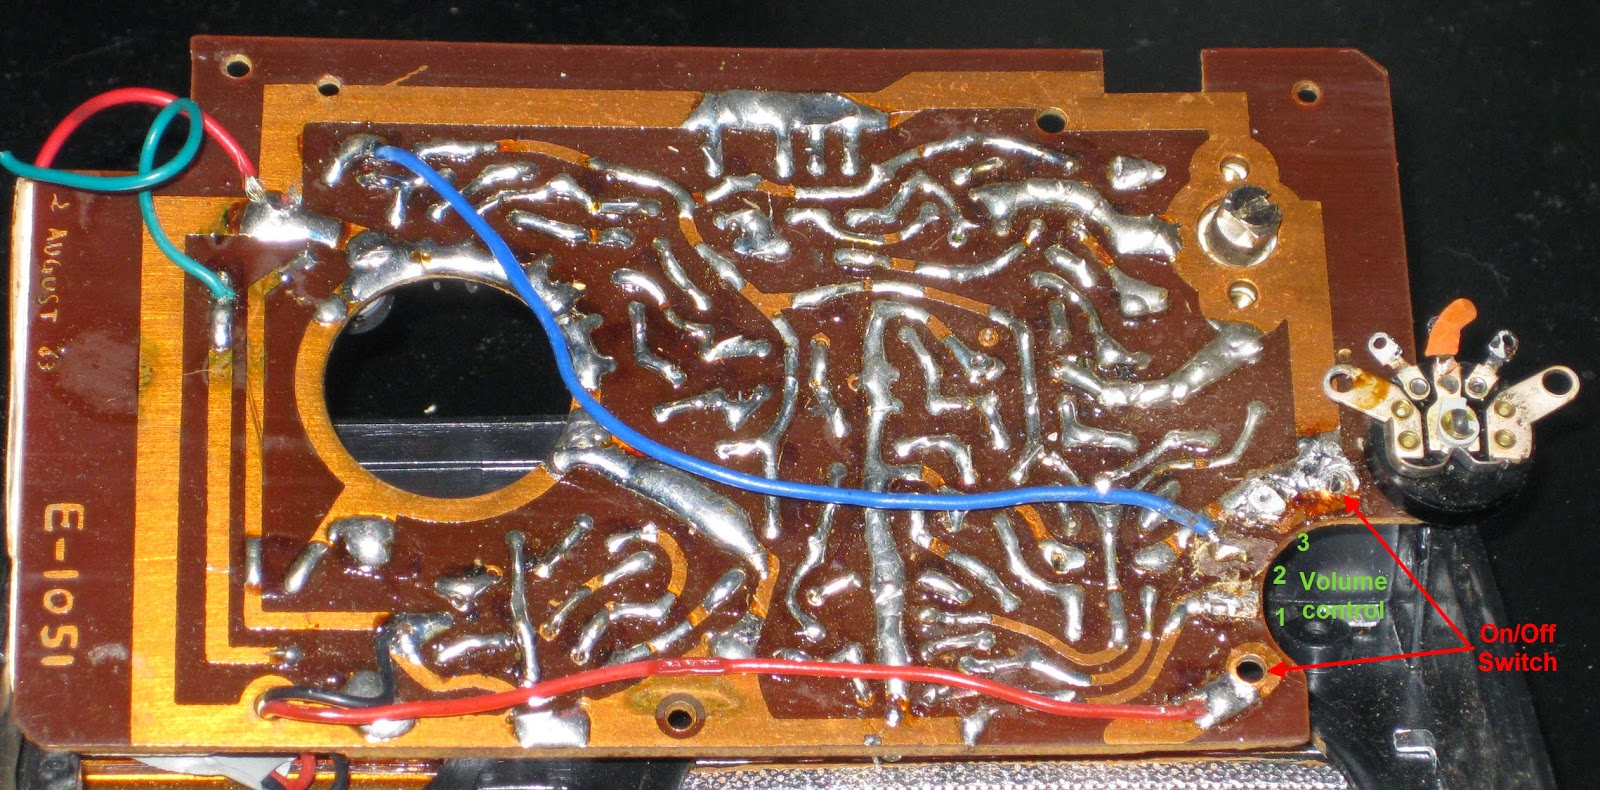 Diy Guitar Amp Hacks June 2014 Pignose Strat Wiring Diagram So What Does The Rehouse Look Like And Hows It Sound Stay Tunedtoo Many Projects In Progress I Have My Doubts That This May Not Produce